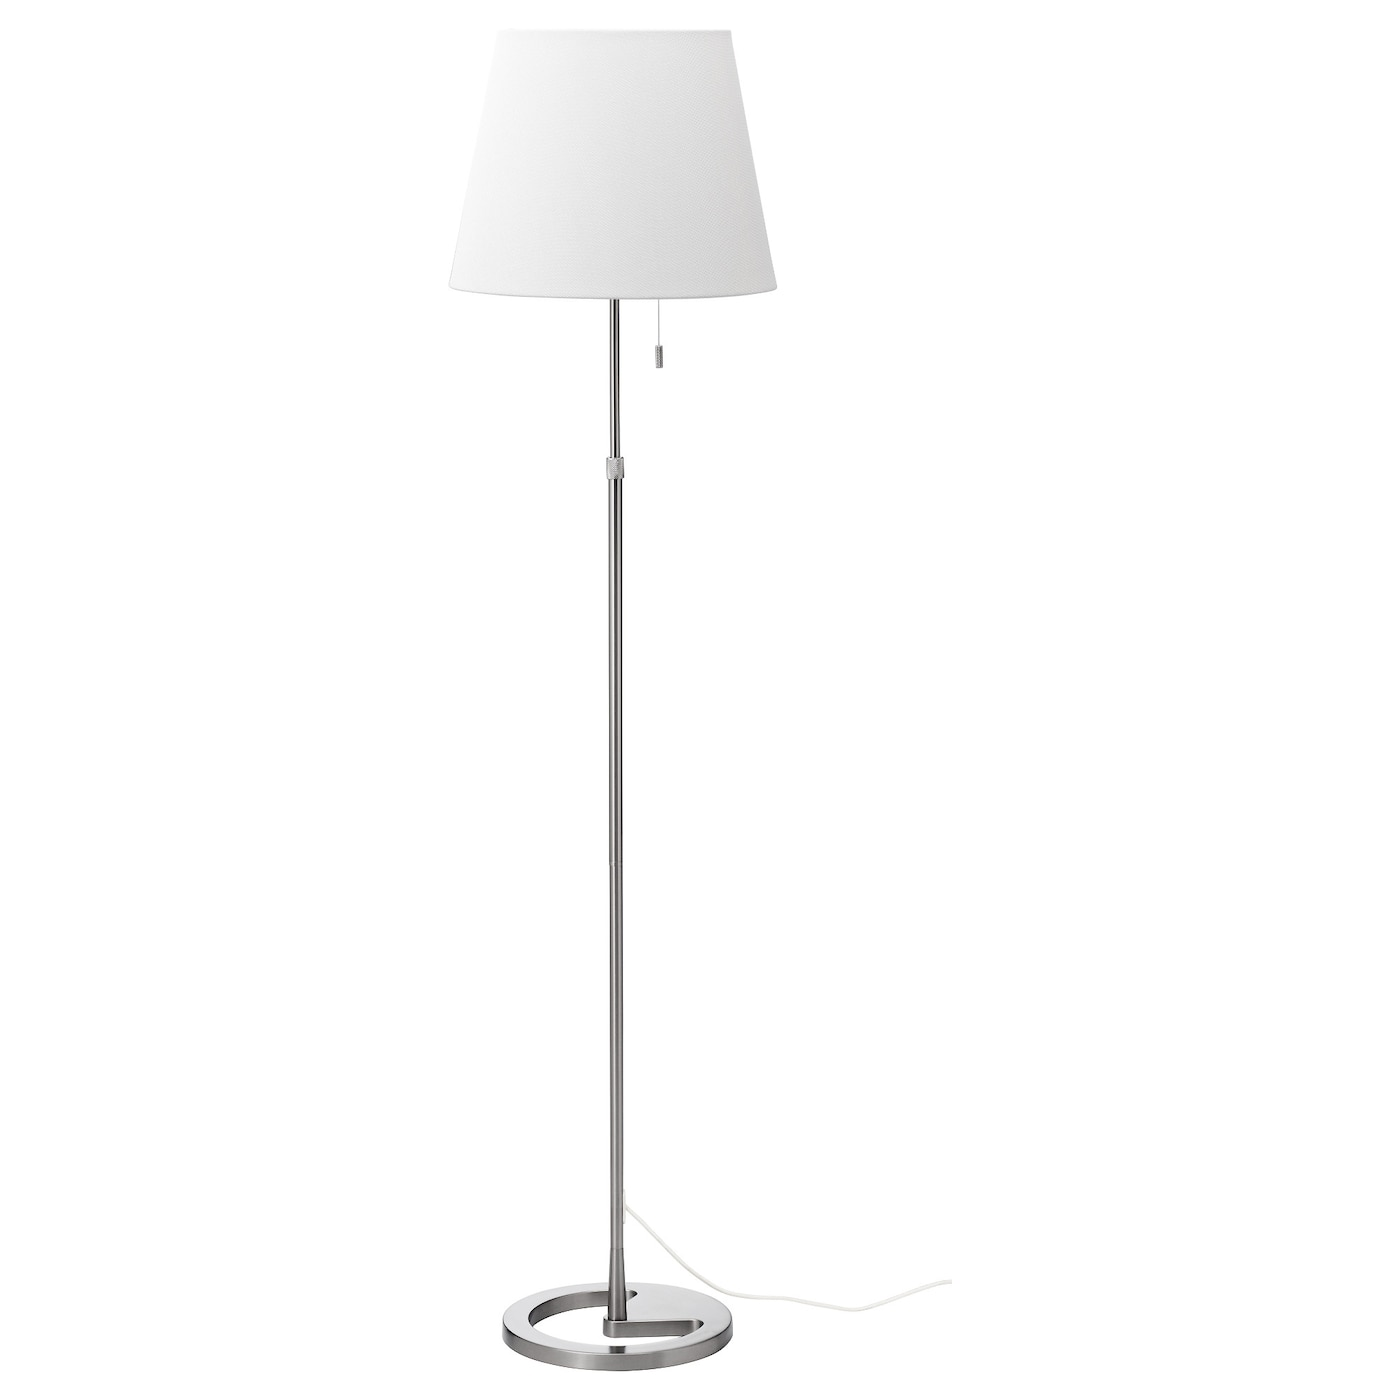 Ikea Schreibtisch Selber Zusammenstellen ~ IKEA NYFORS floor lamp The height is adjustable to suit your lighting